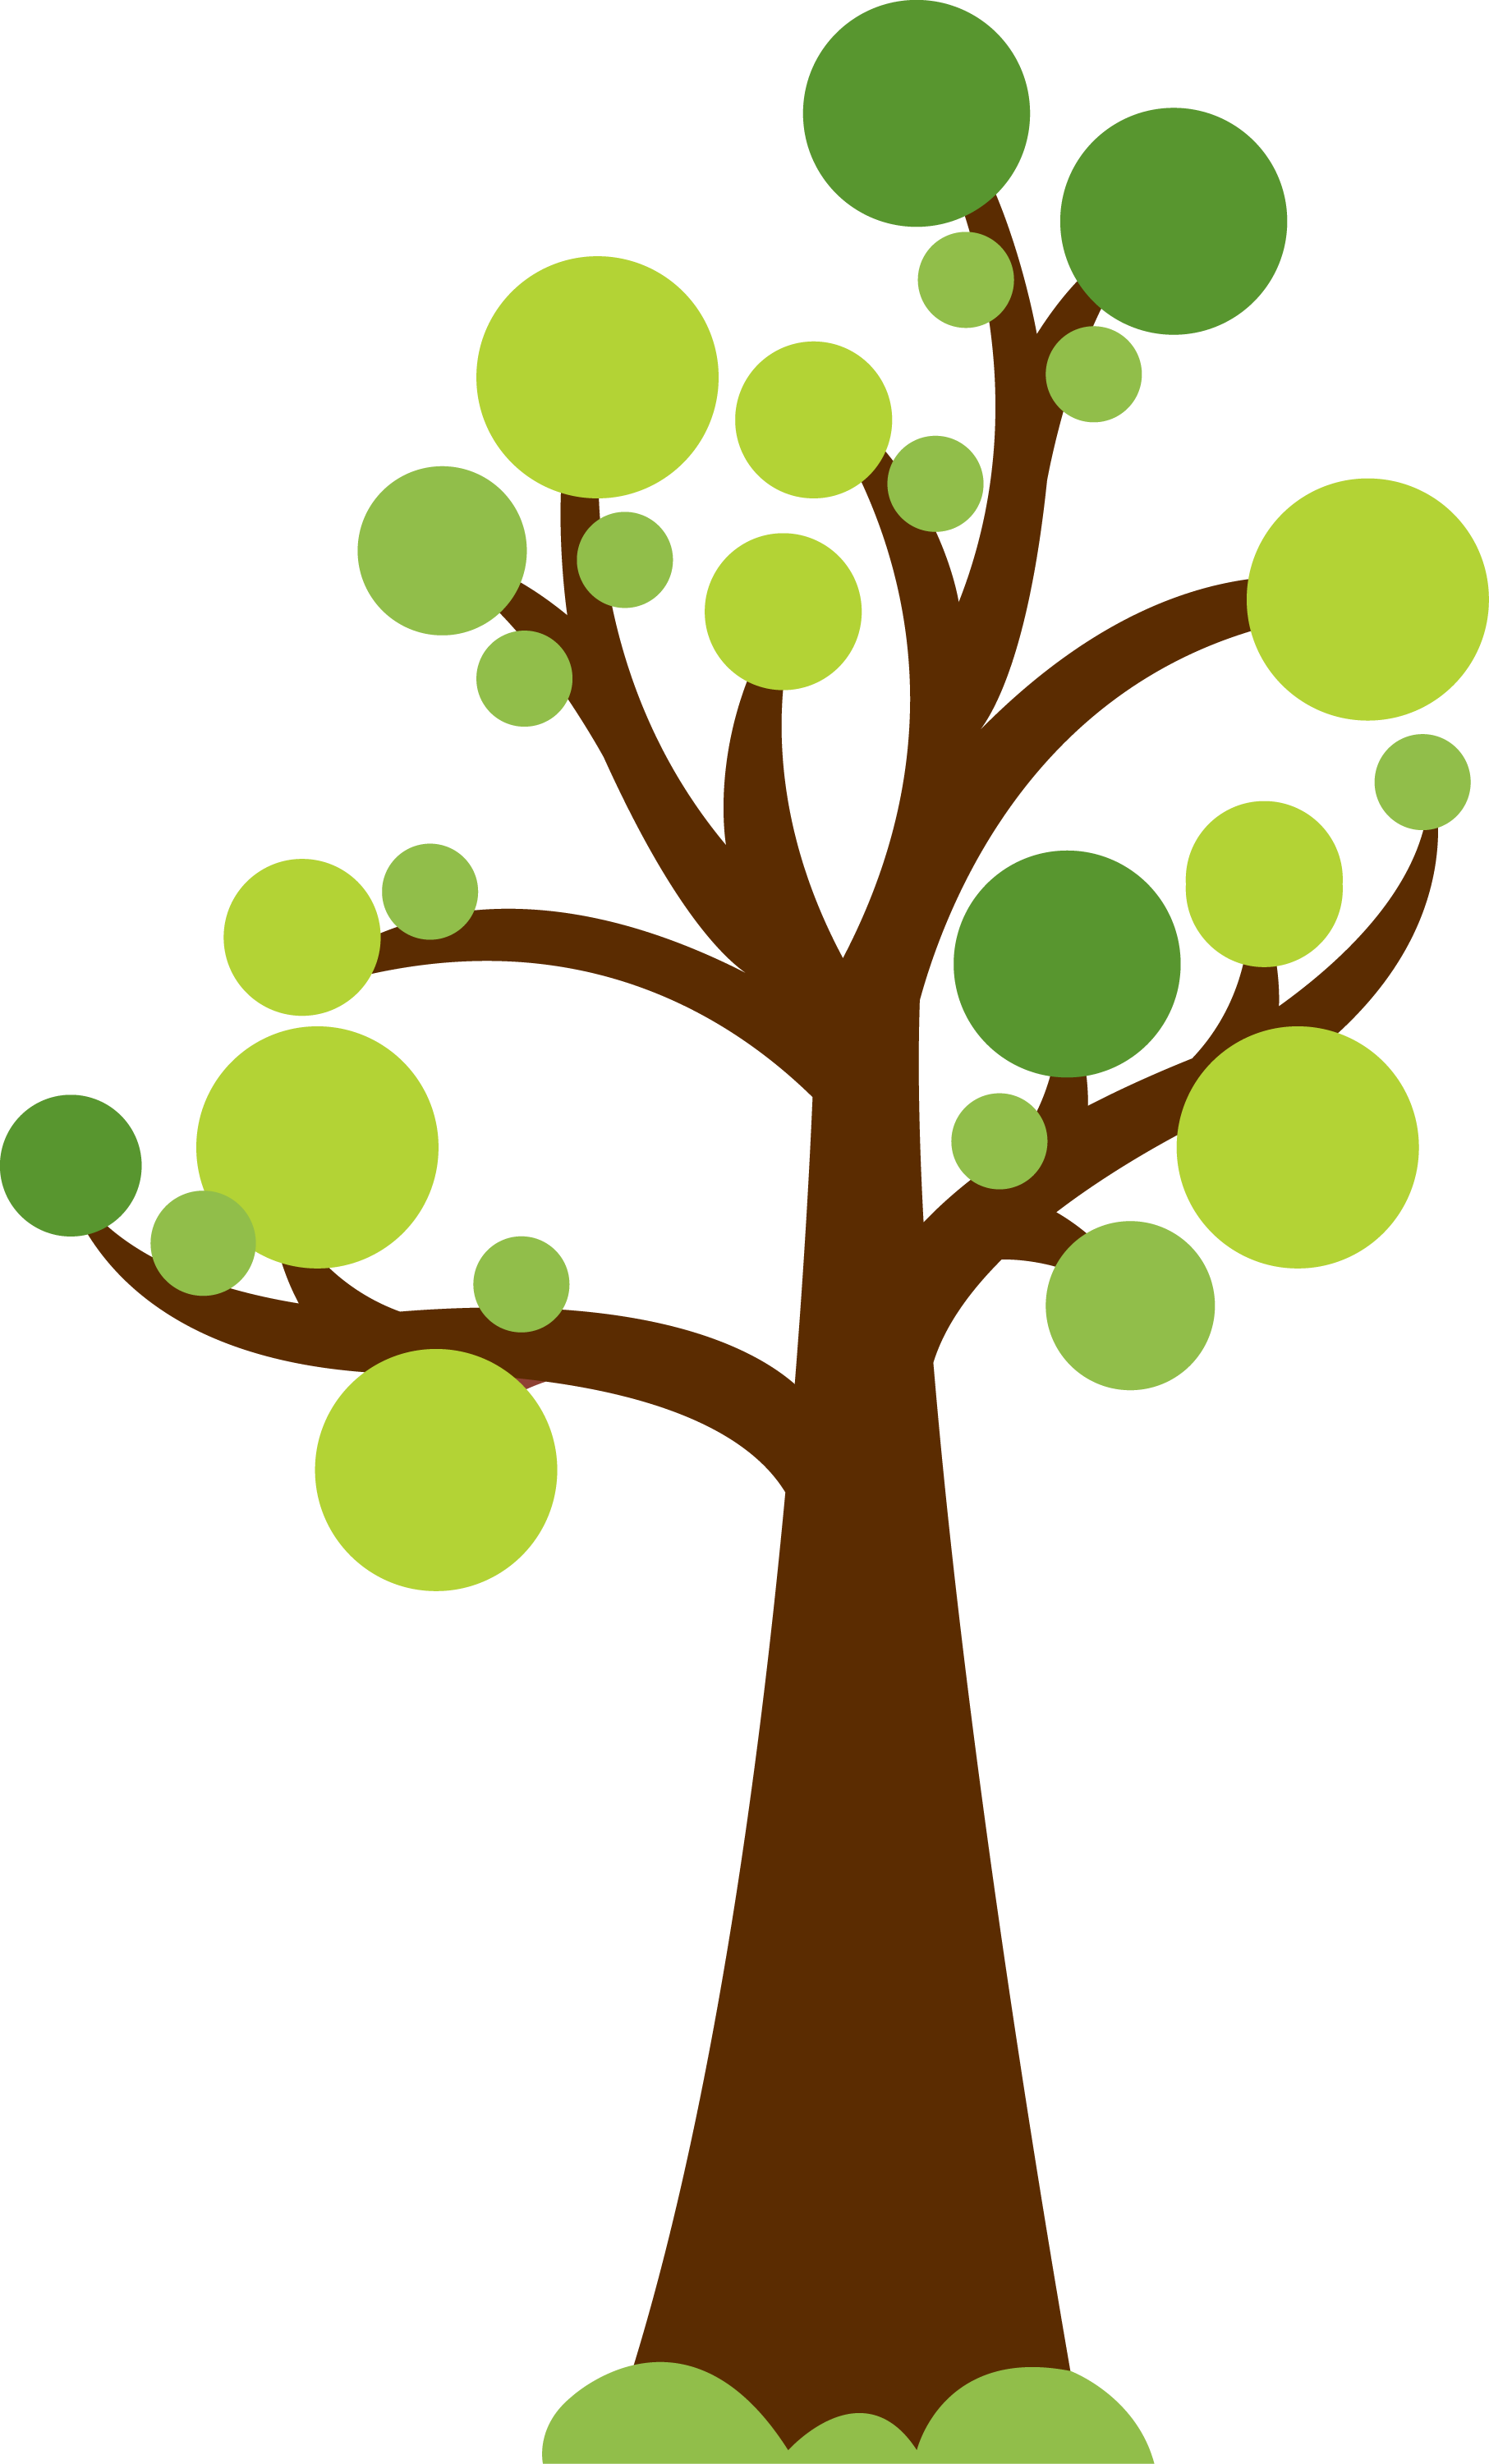 Tree with circles for leaves. Cute image-Tree with circles for leaves. Cute image for summer or garden theme. Photo  by - Minus-5